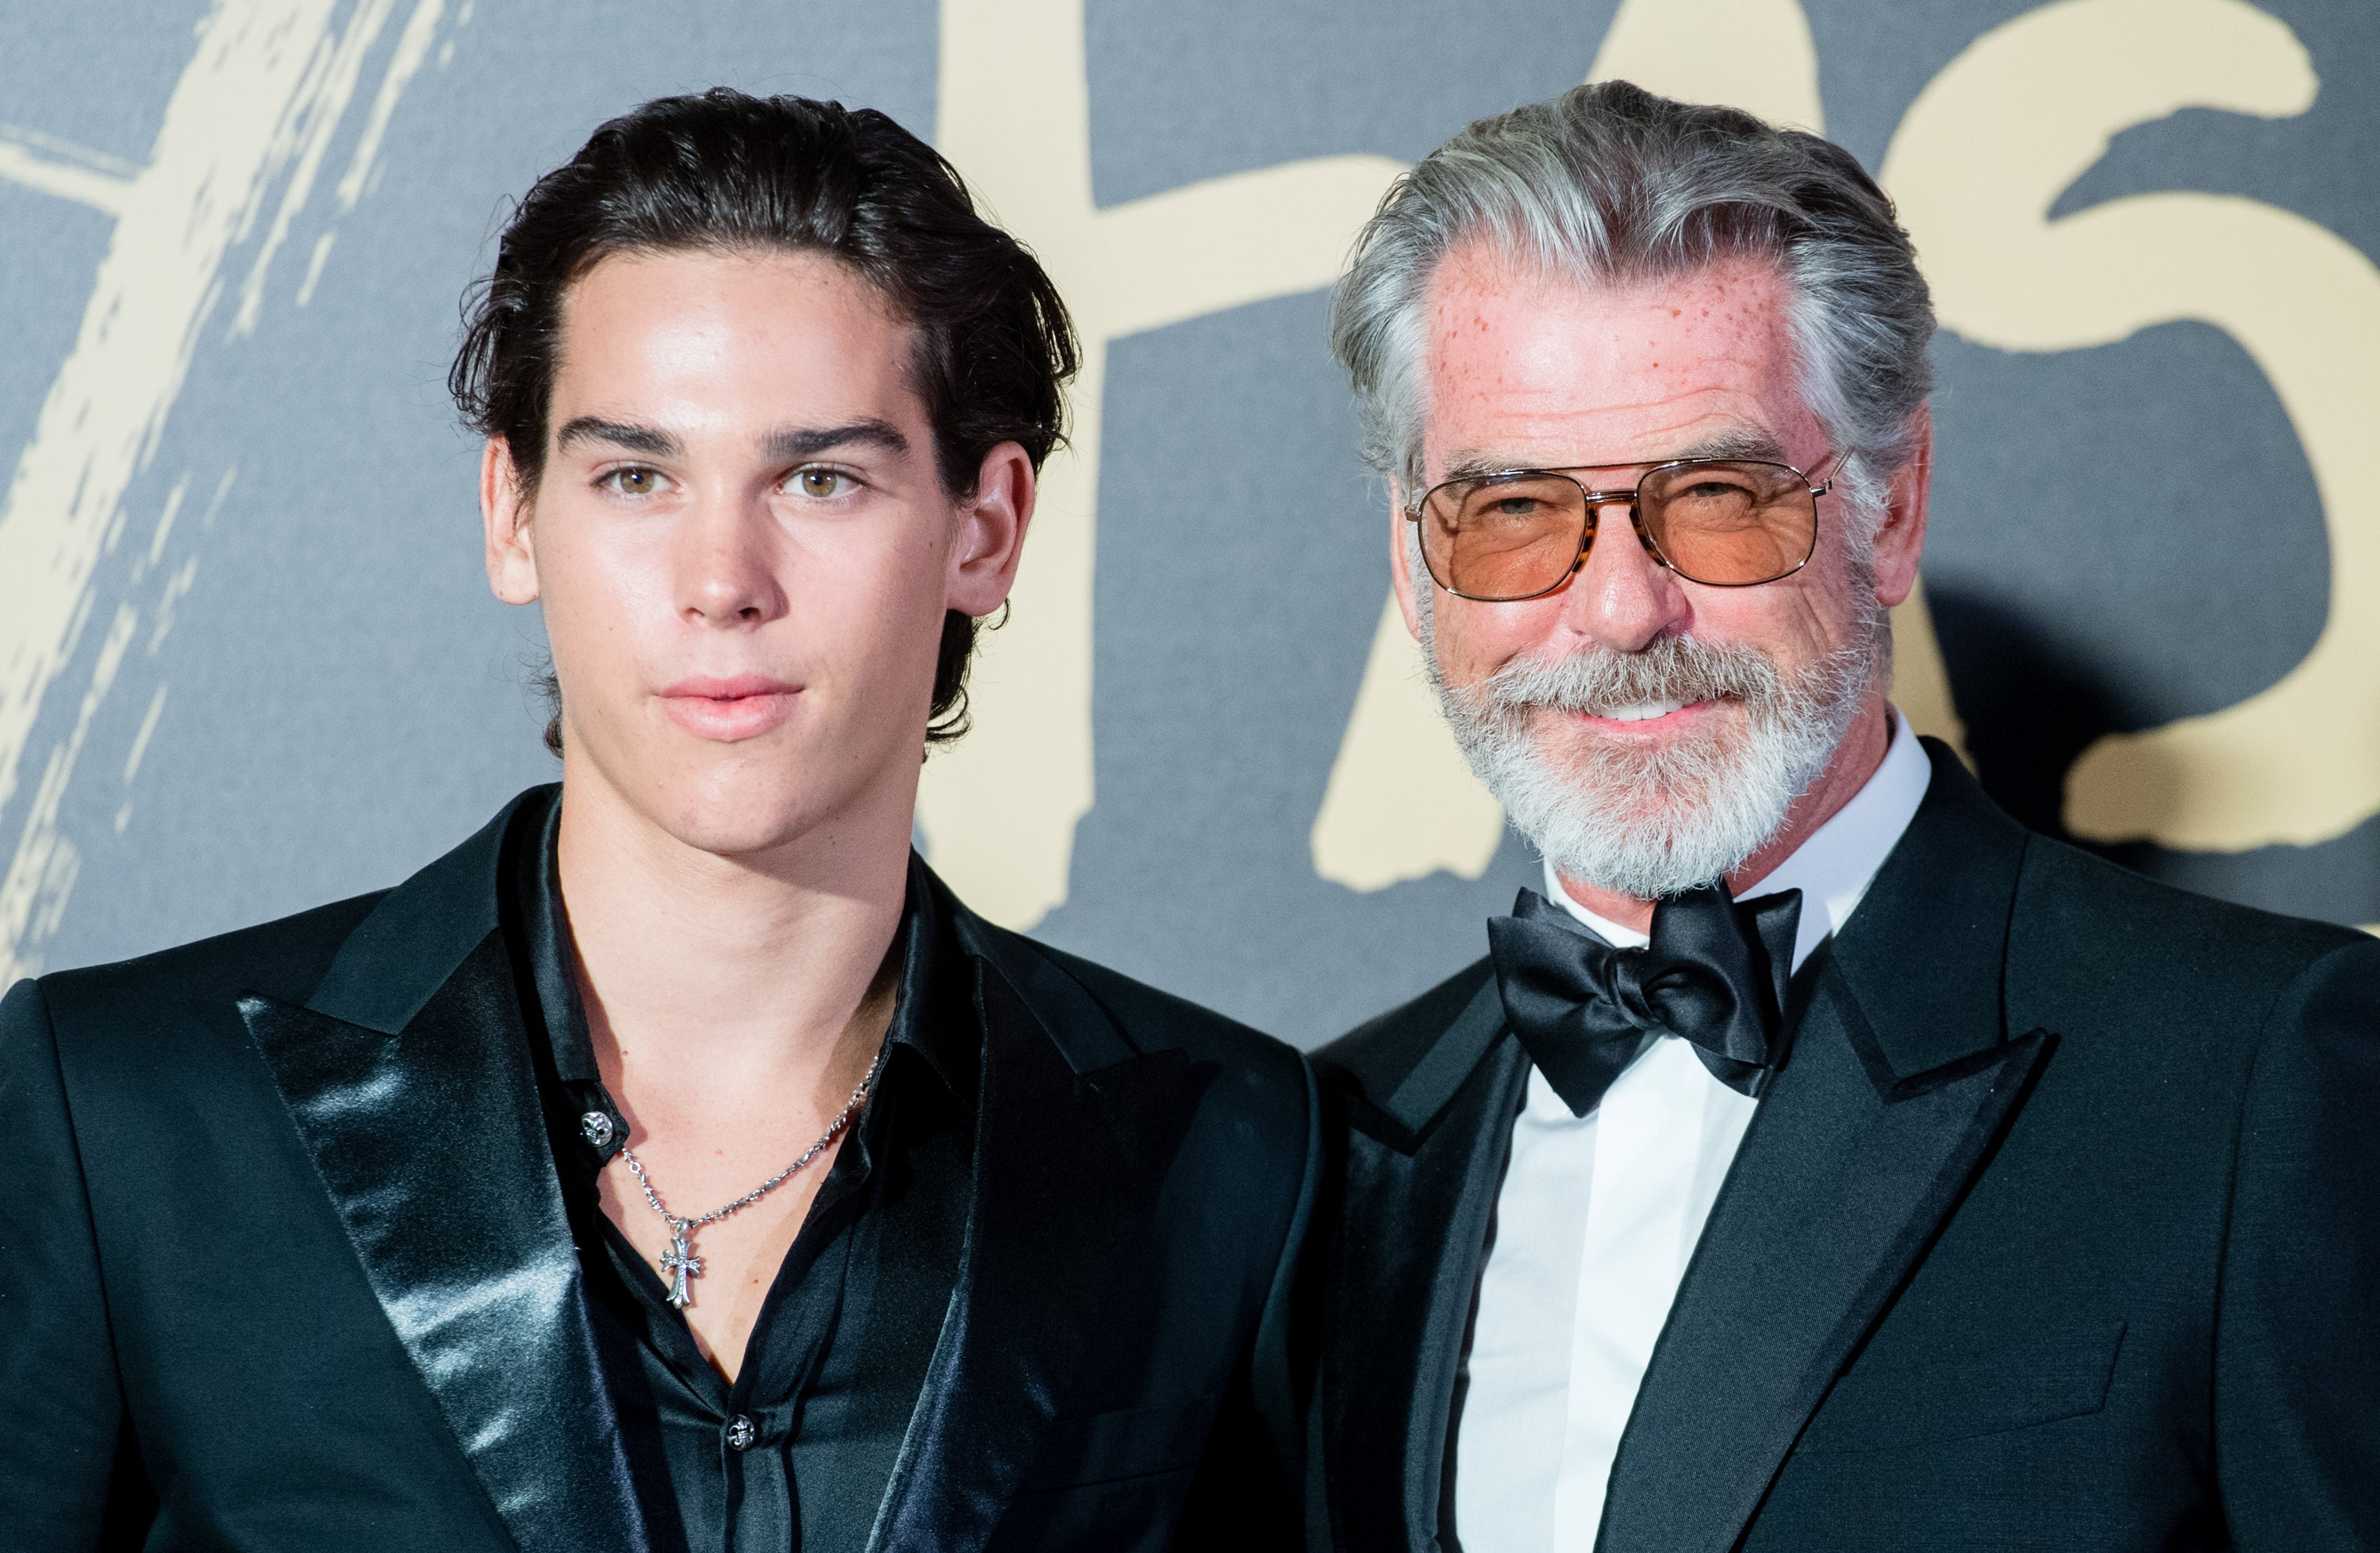 Pierce Brosnan's Son Will Have You Seeing Double at London Fashion Week: Pic